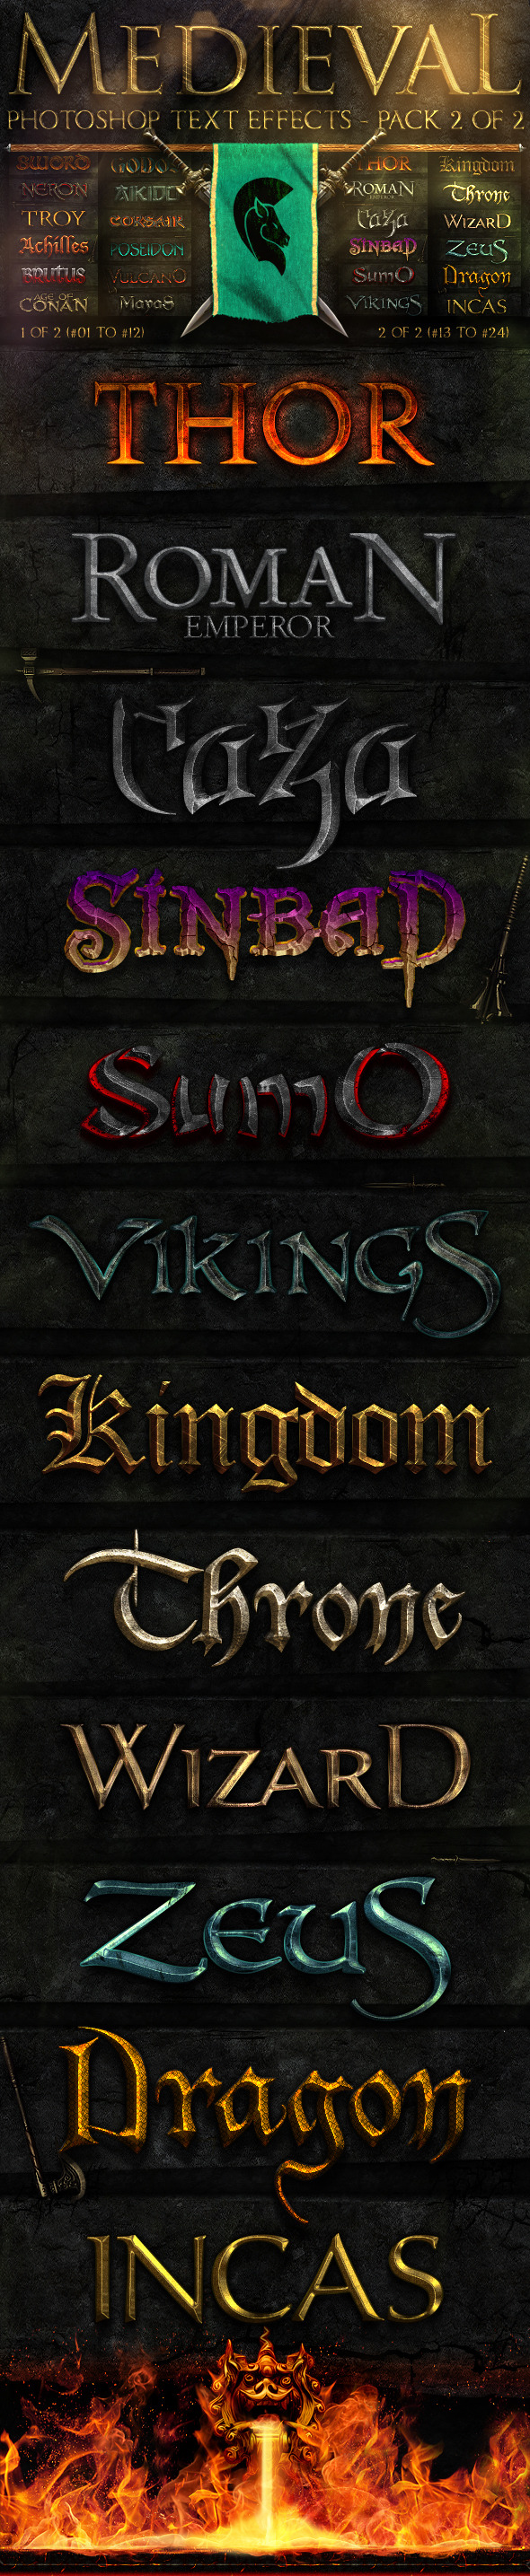 Graphicriver | Medieval Photoshop Text Effects 2 of 2 Free Download free download Graphicriver | Medieval Photoshop Text Effects 2 of 2 Free Download nulled Graphicriver | Medieval Photoshop Text Effects 2 of 2 Free Download